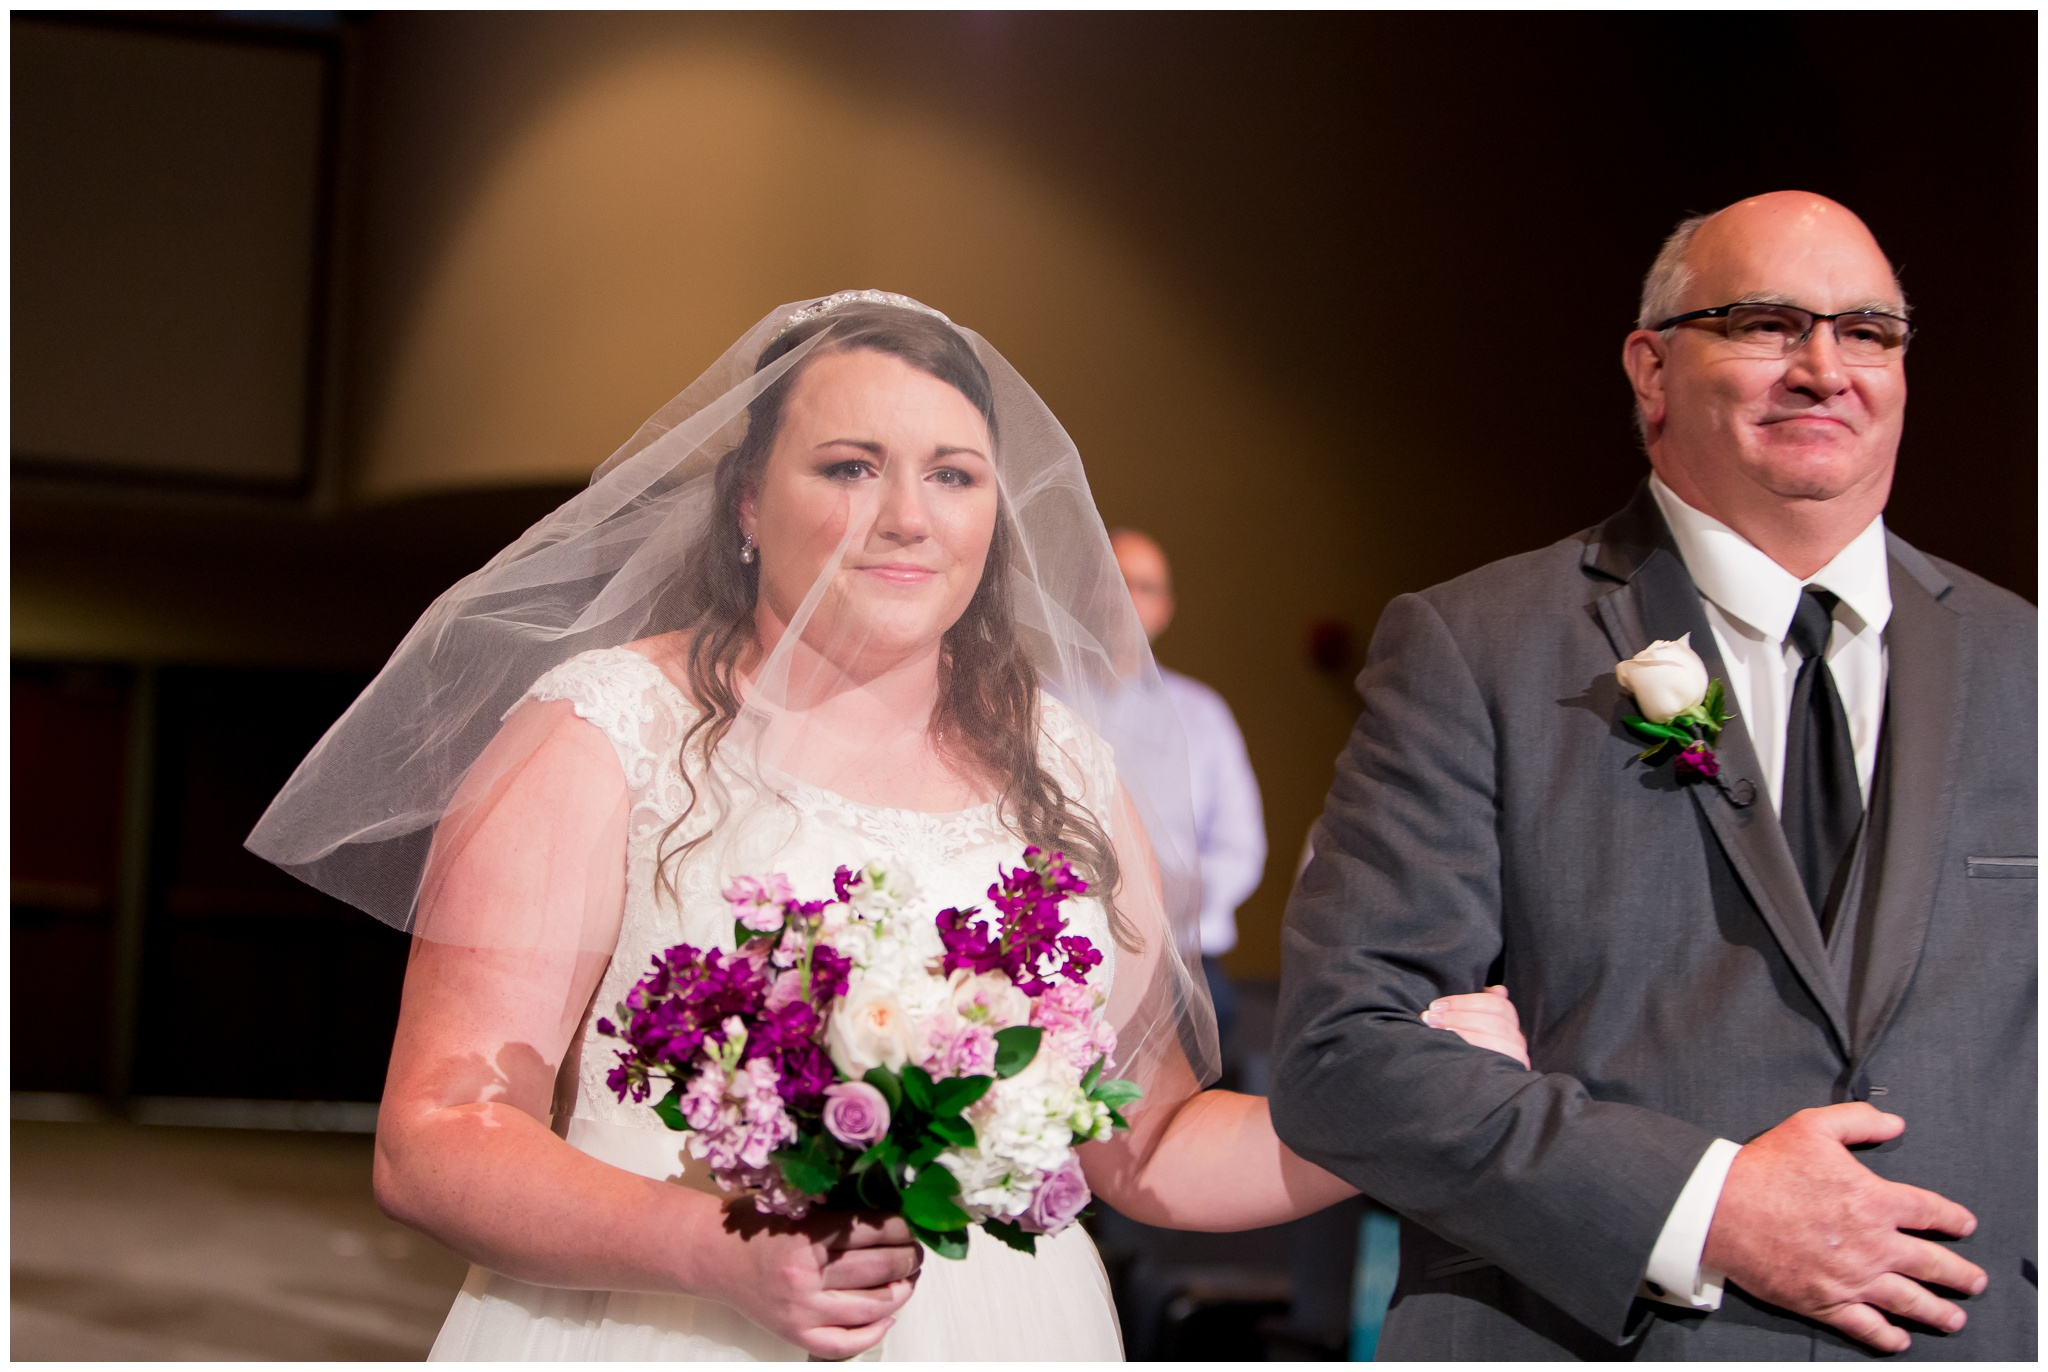 bride holding father's arm walking down the aisle during wedding ceremony at Crossroads Community Church in Kokomo Indiana